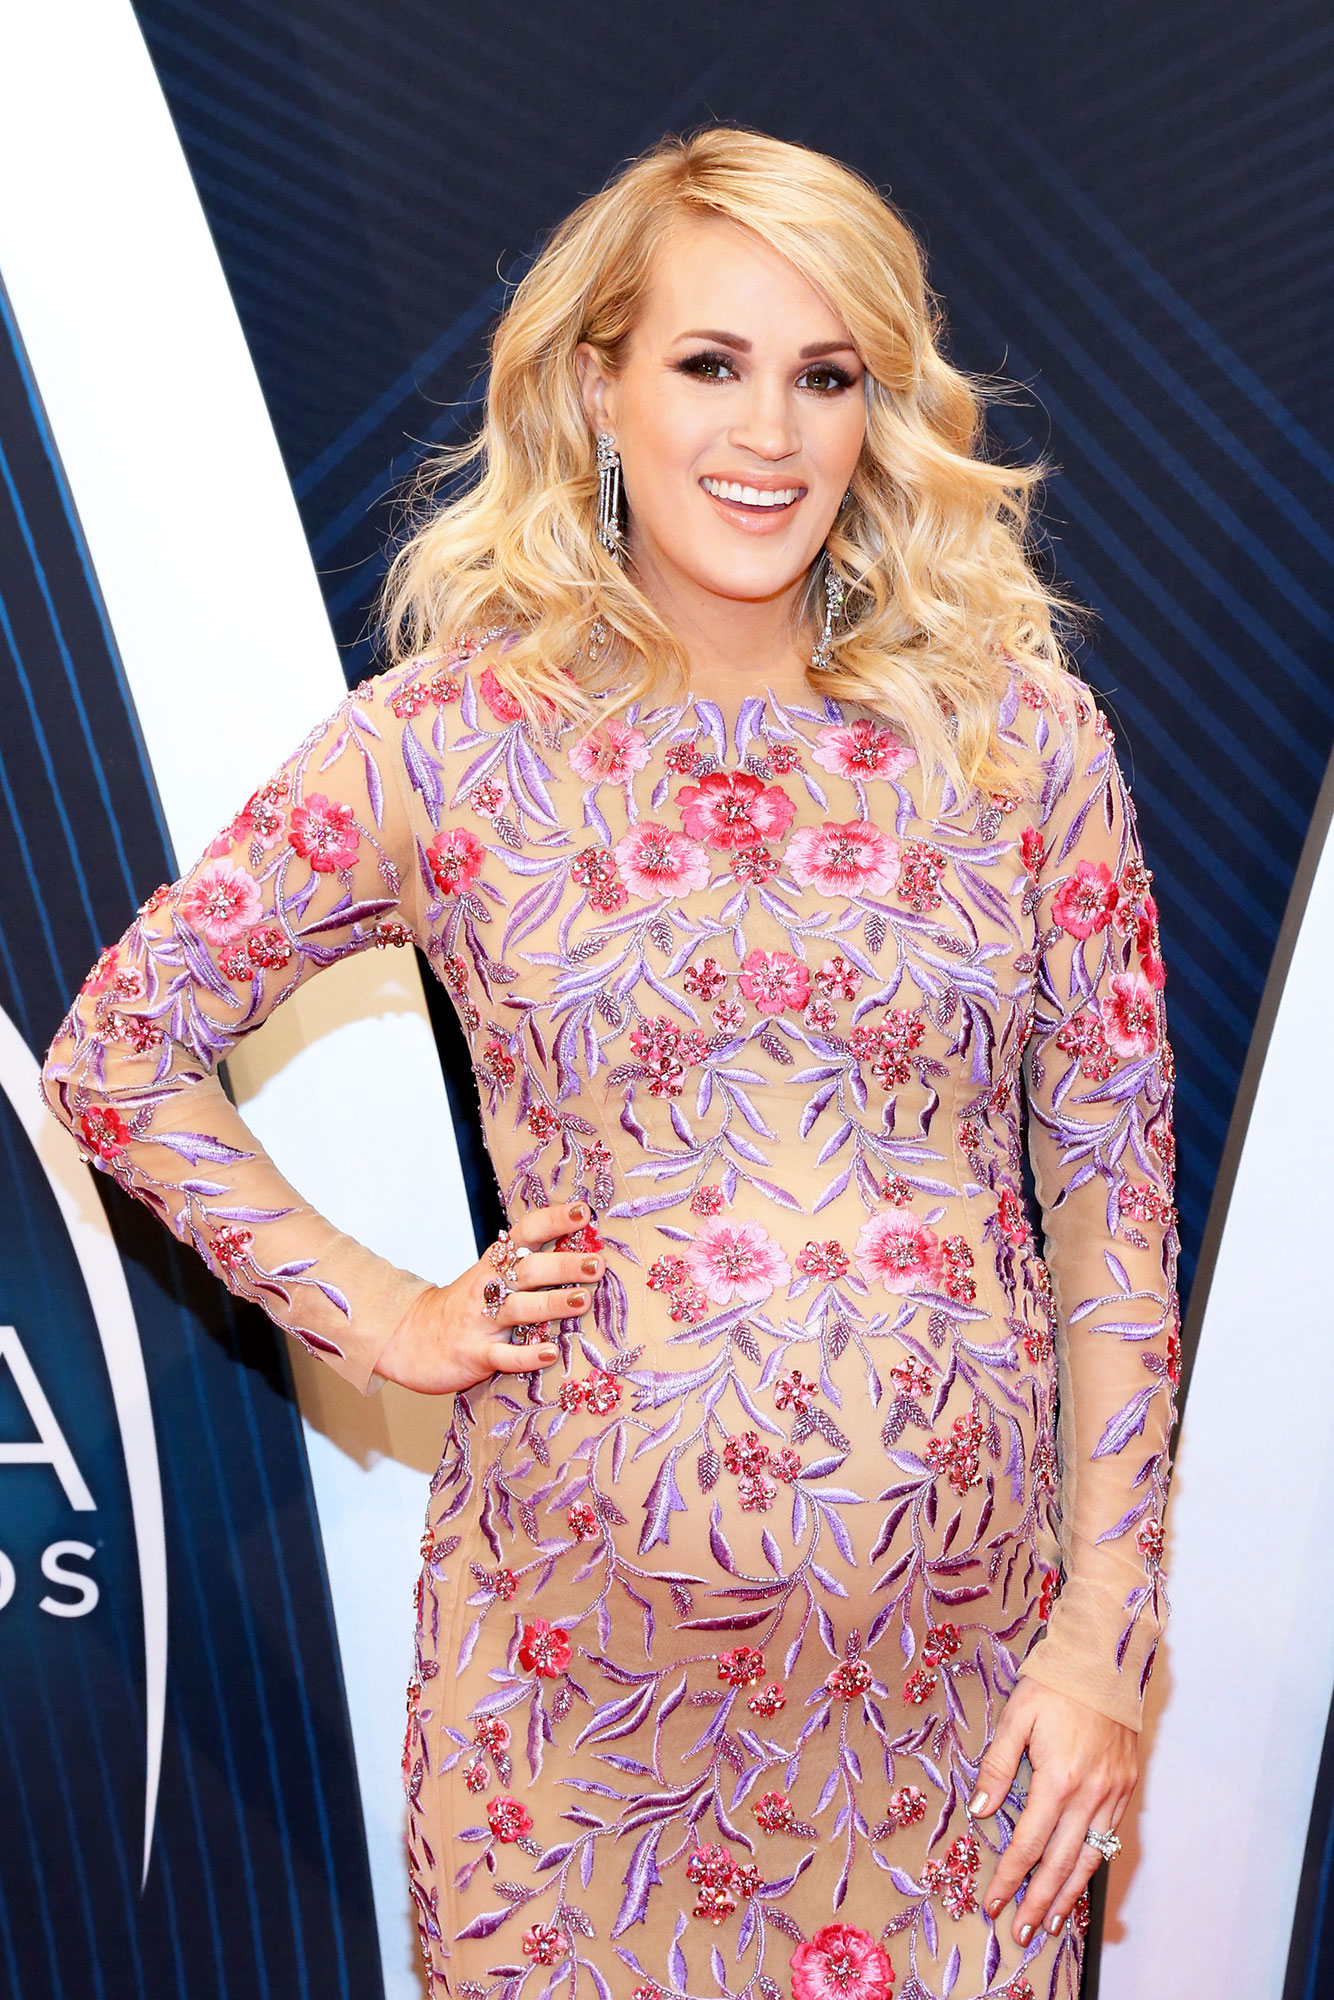 Naked pics of carrie underwood pic 340